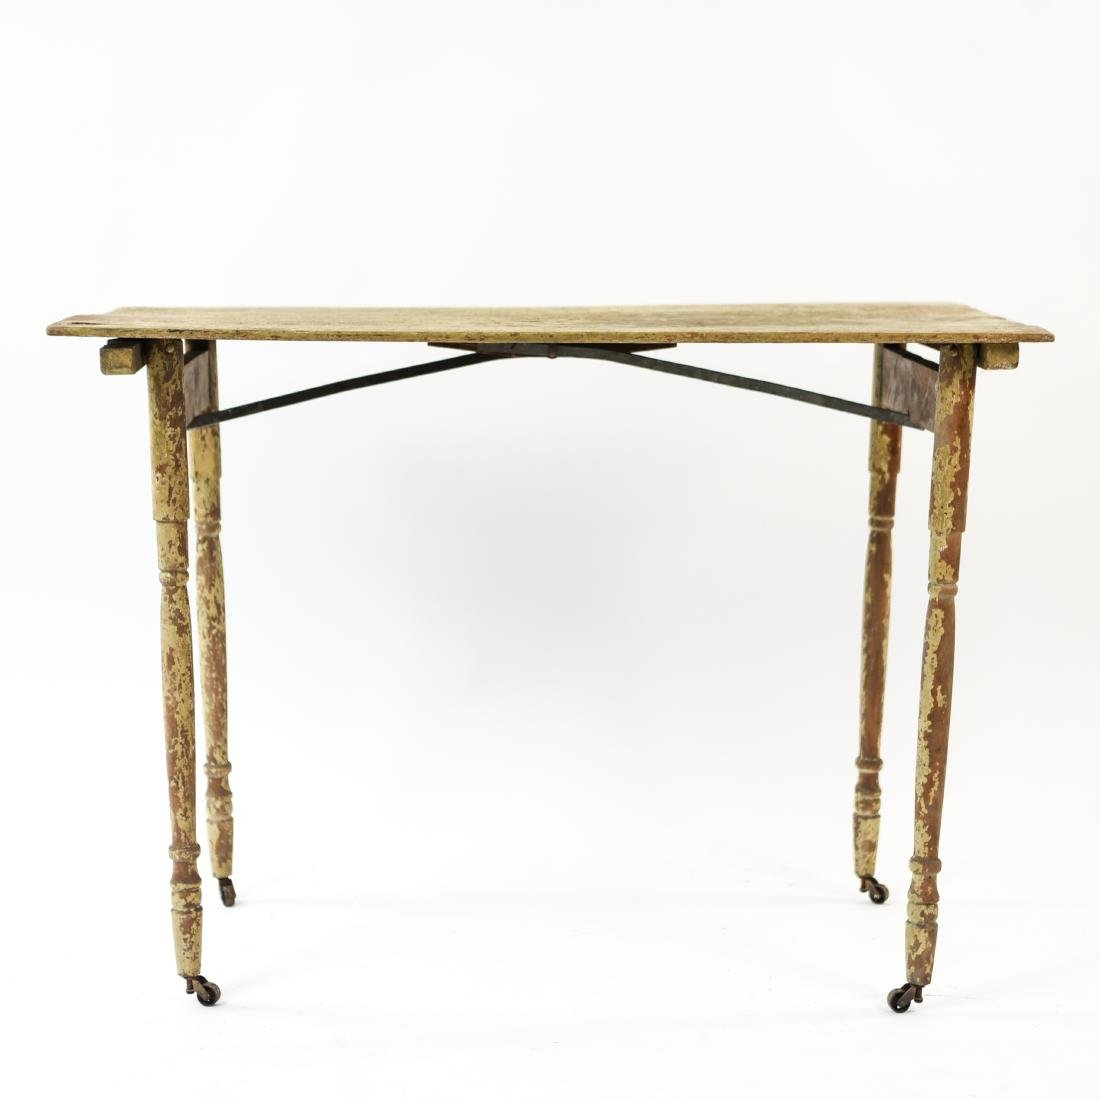 VINTAGE FOLDING TABLE W/ OLD PAINT - 2